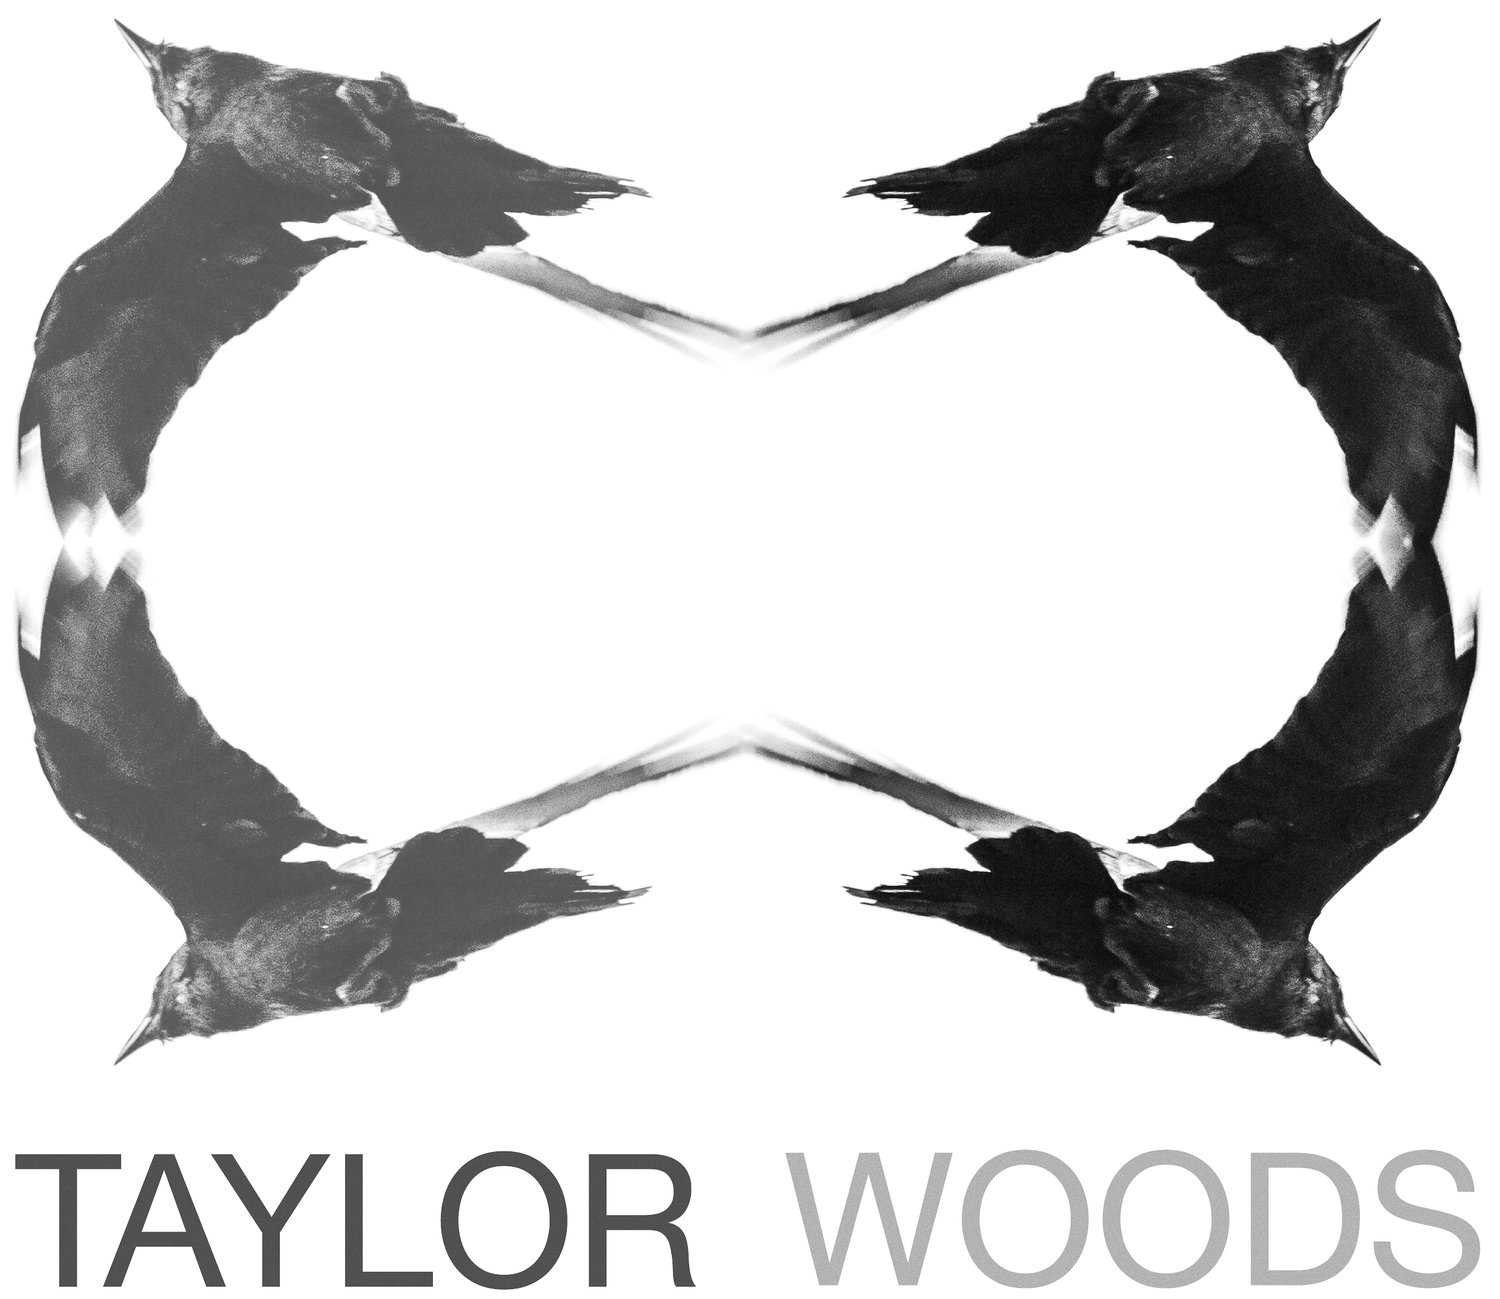 Taylor Woods